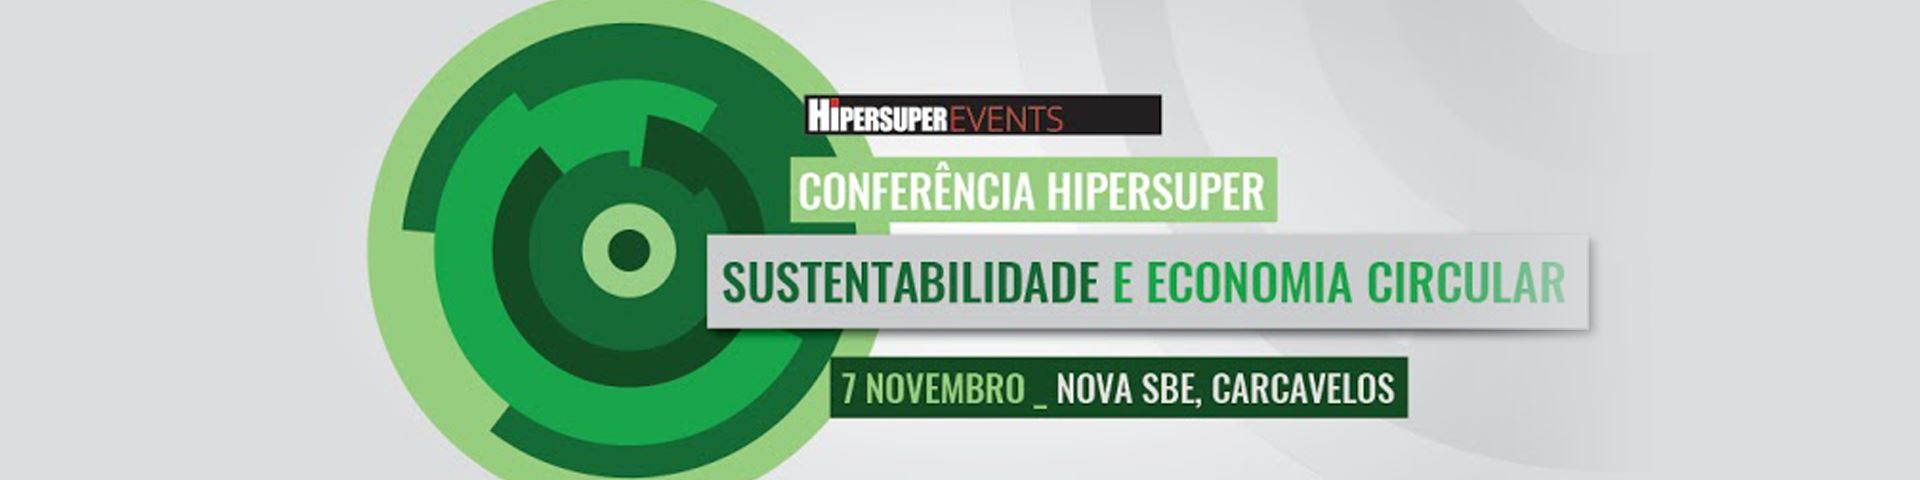 Hipersuper Conference – Sustainability And Circular Economy